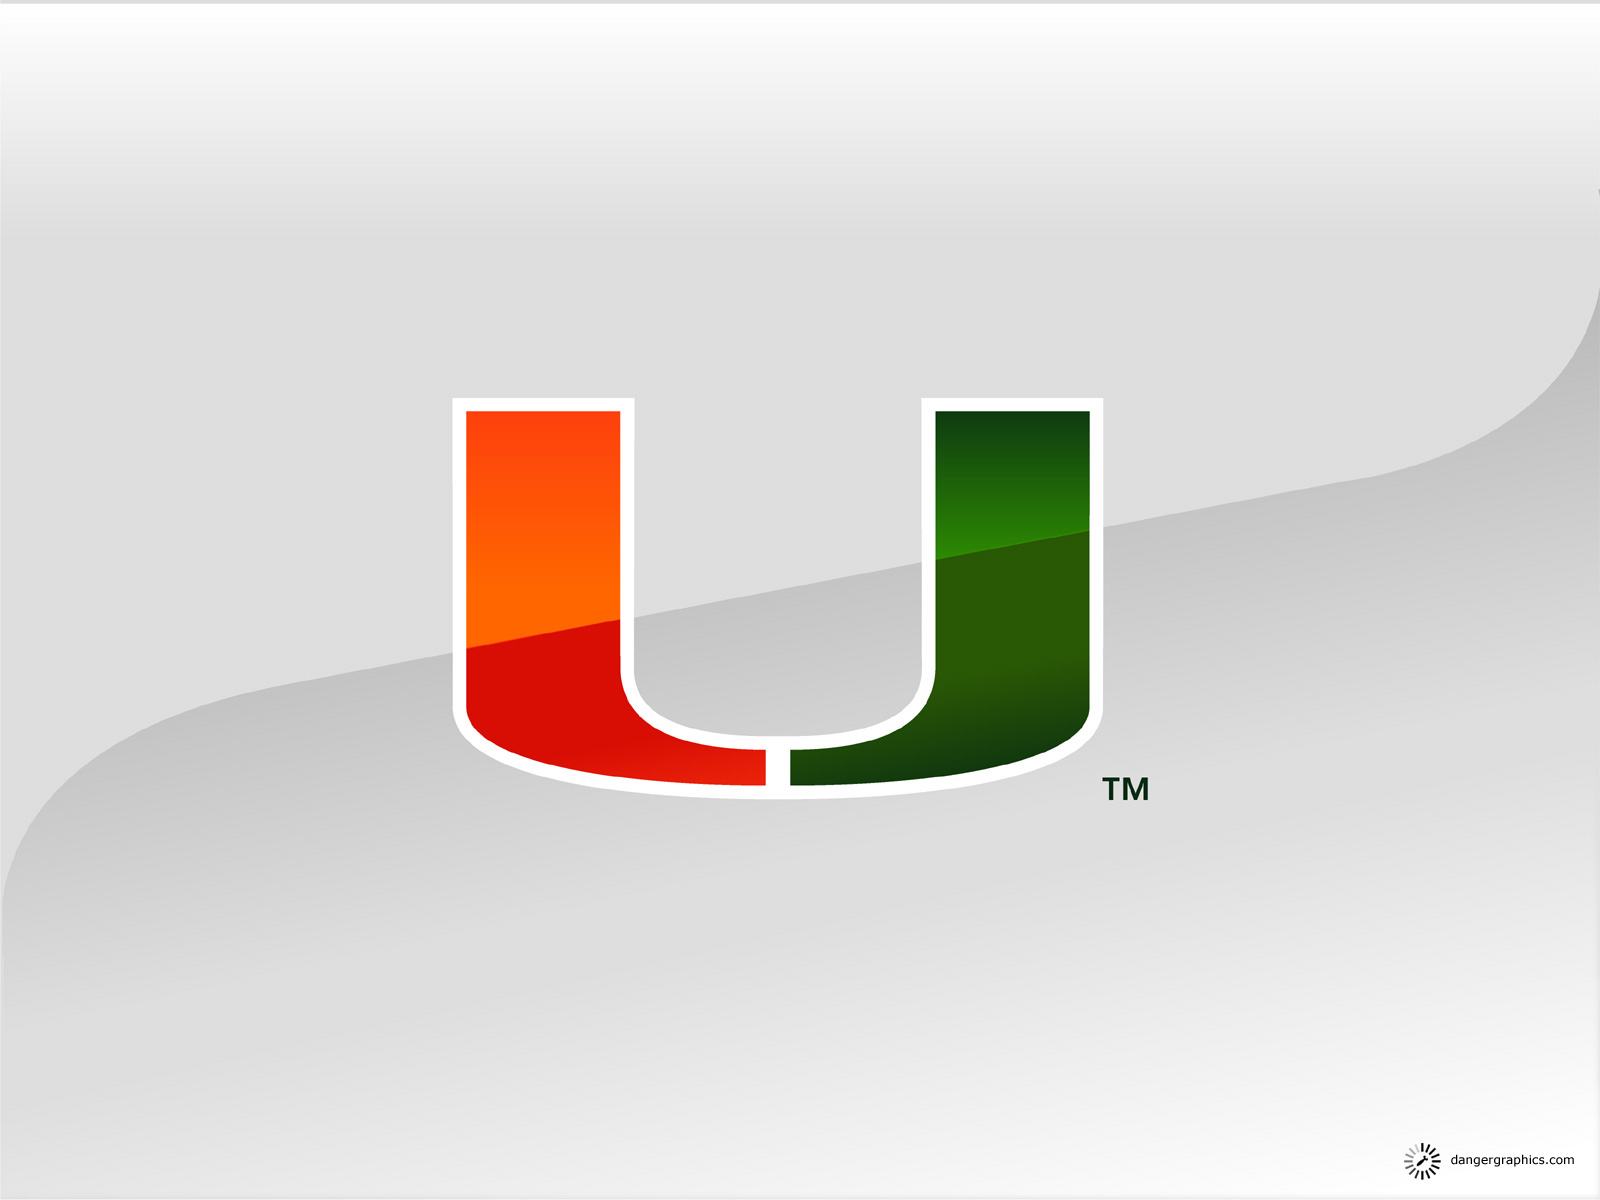 Wallpaper University of Miami Florida wallpaper miami portfolio 1600x1200